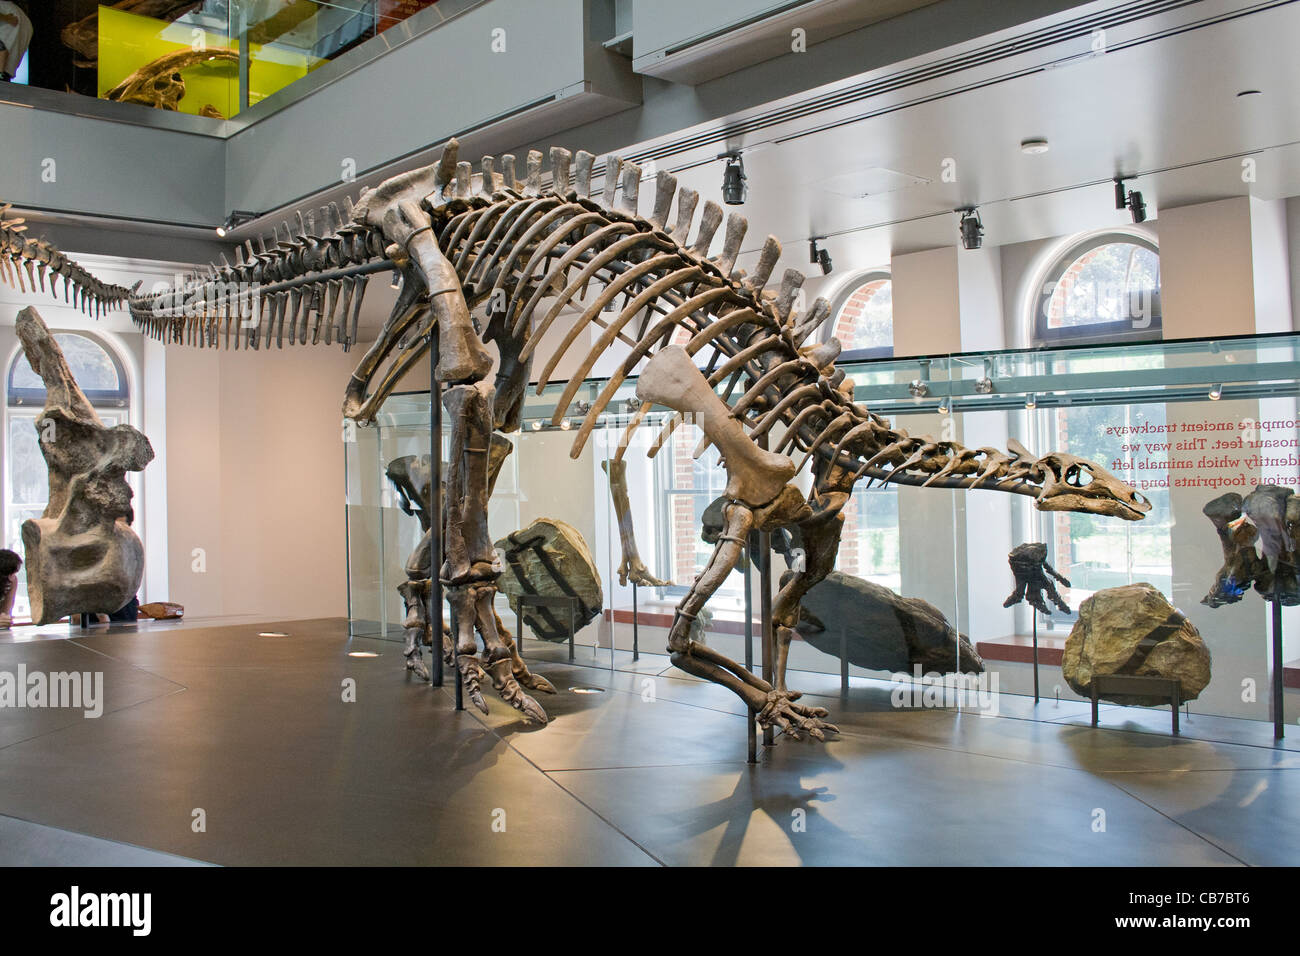 Camptosaurus, Dinosaur Hall, Natural History Museum, Los Angeles, California, USA - Stock Image